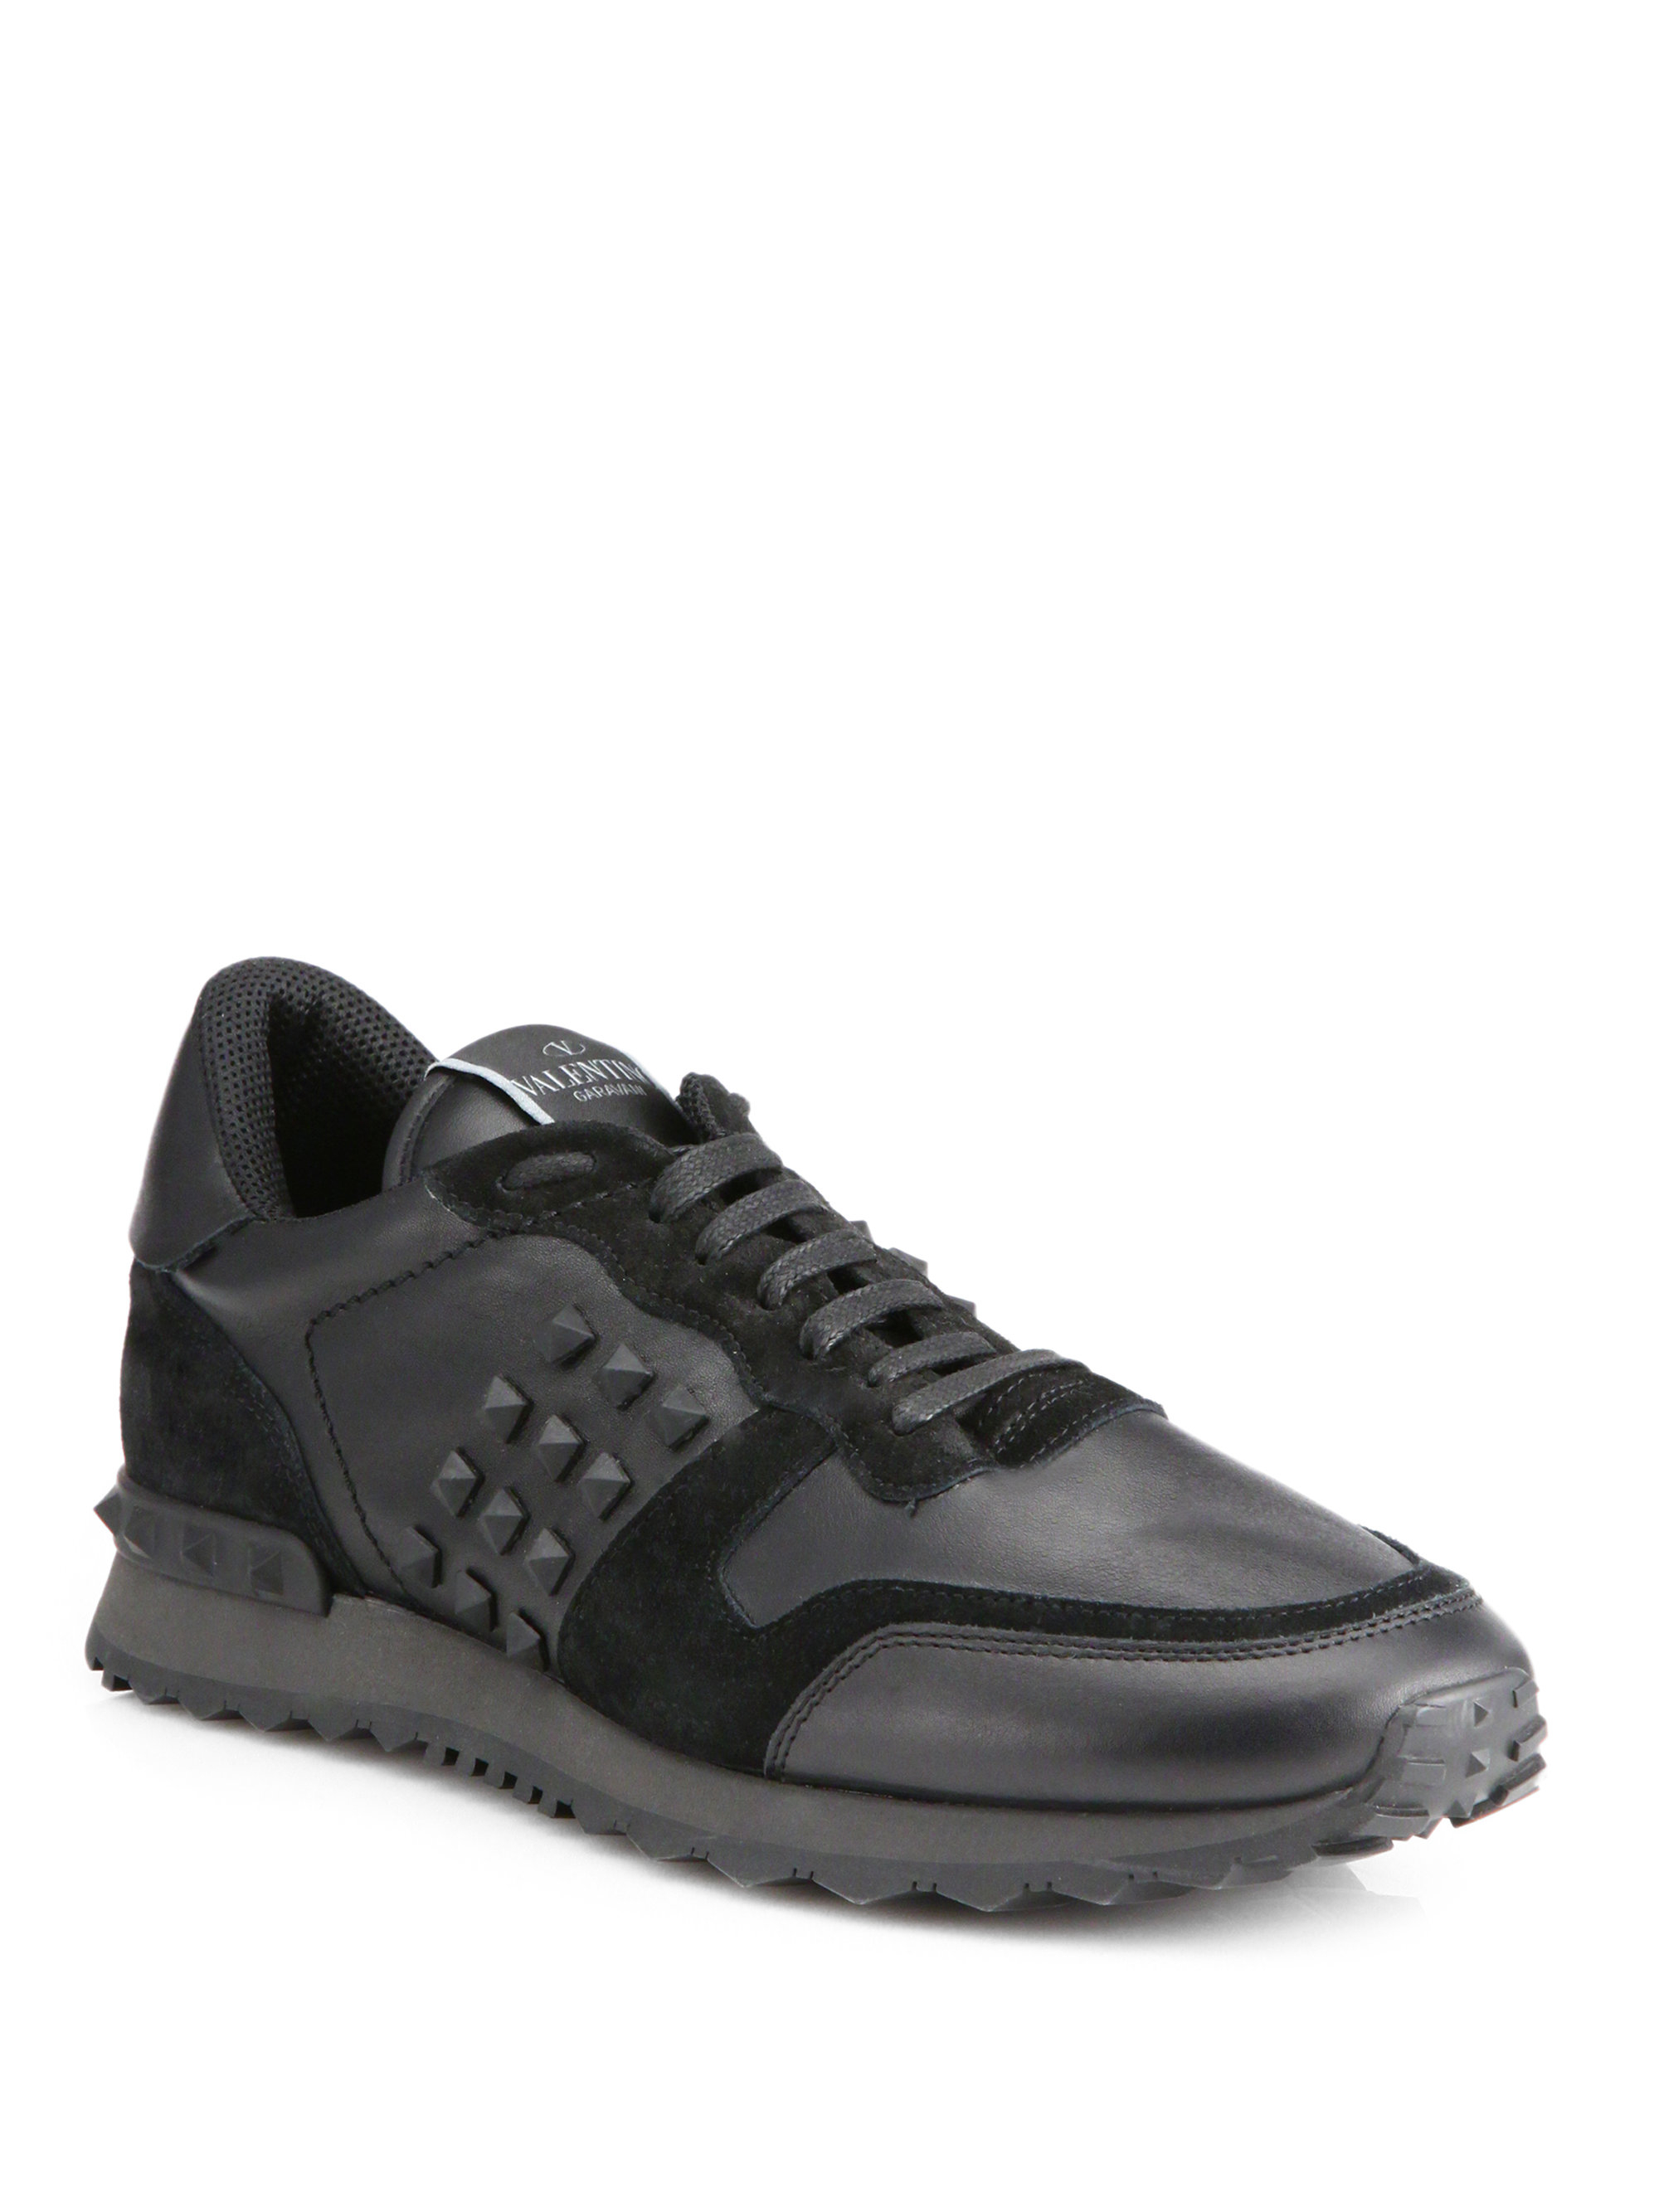 950fcc48a467 Lyst - Valentino Rockstud Sneakers in Black for Men